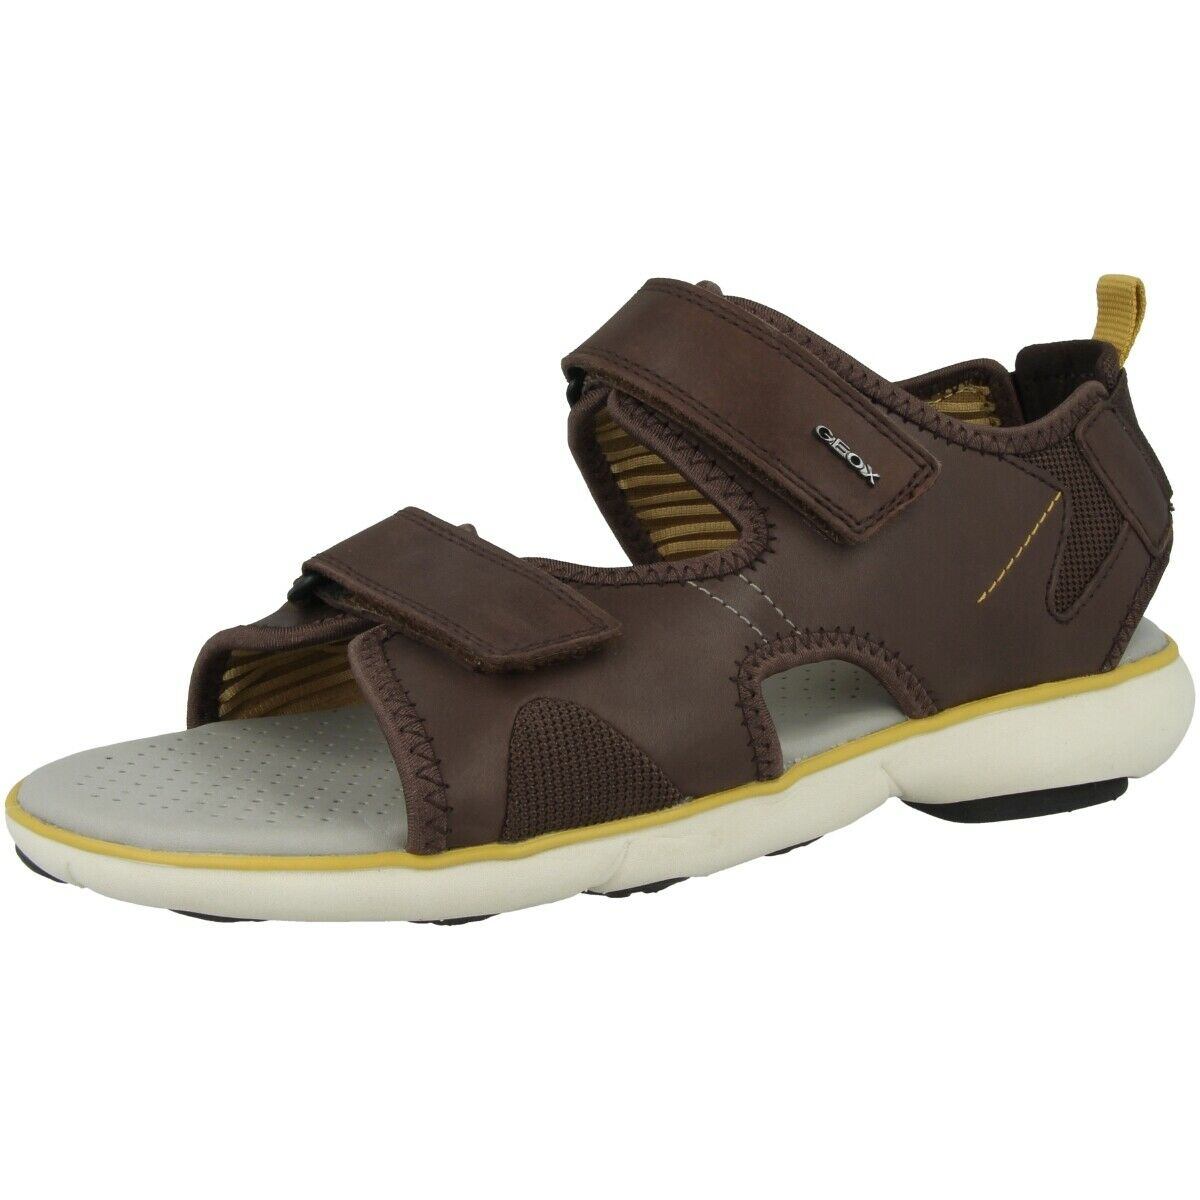 Geox u Nebula lb shoes Men's Sneakers Men Low shoes Brown U926WB00043C0723